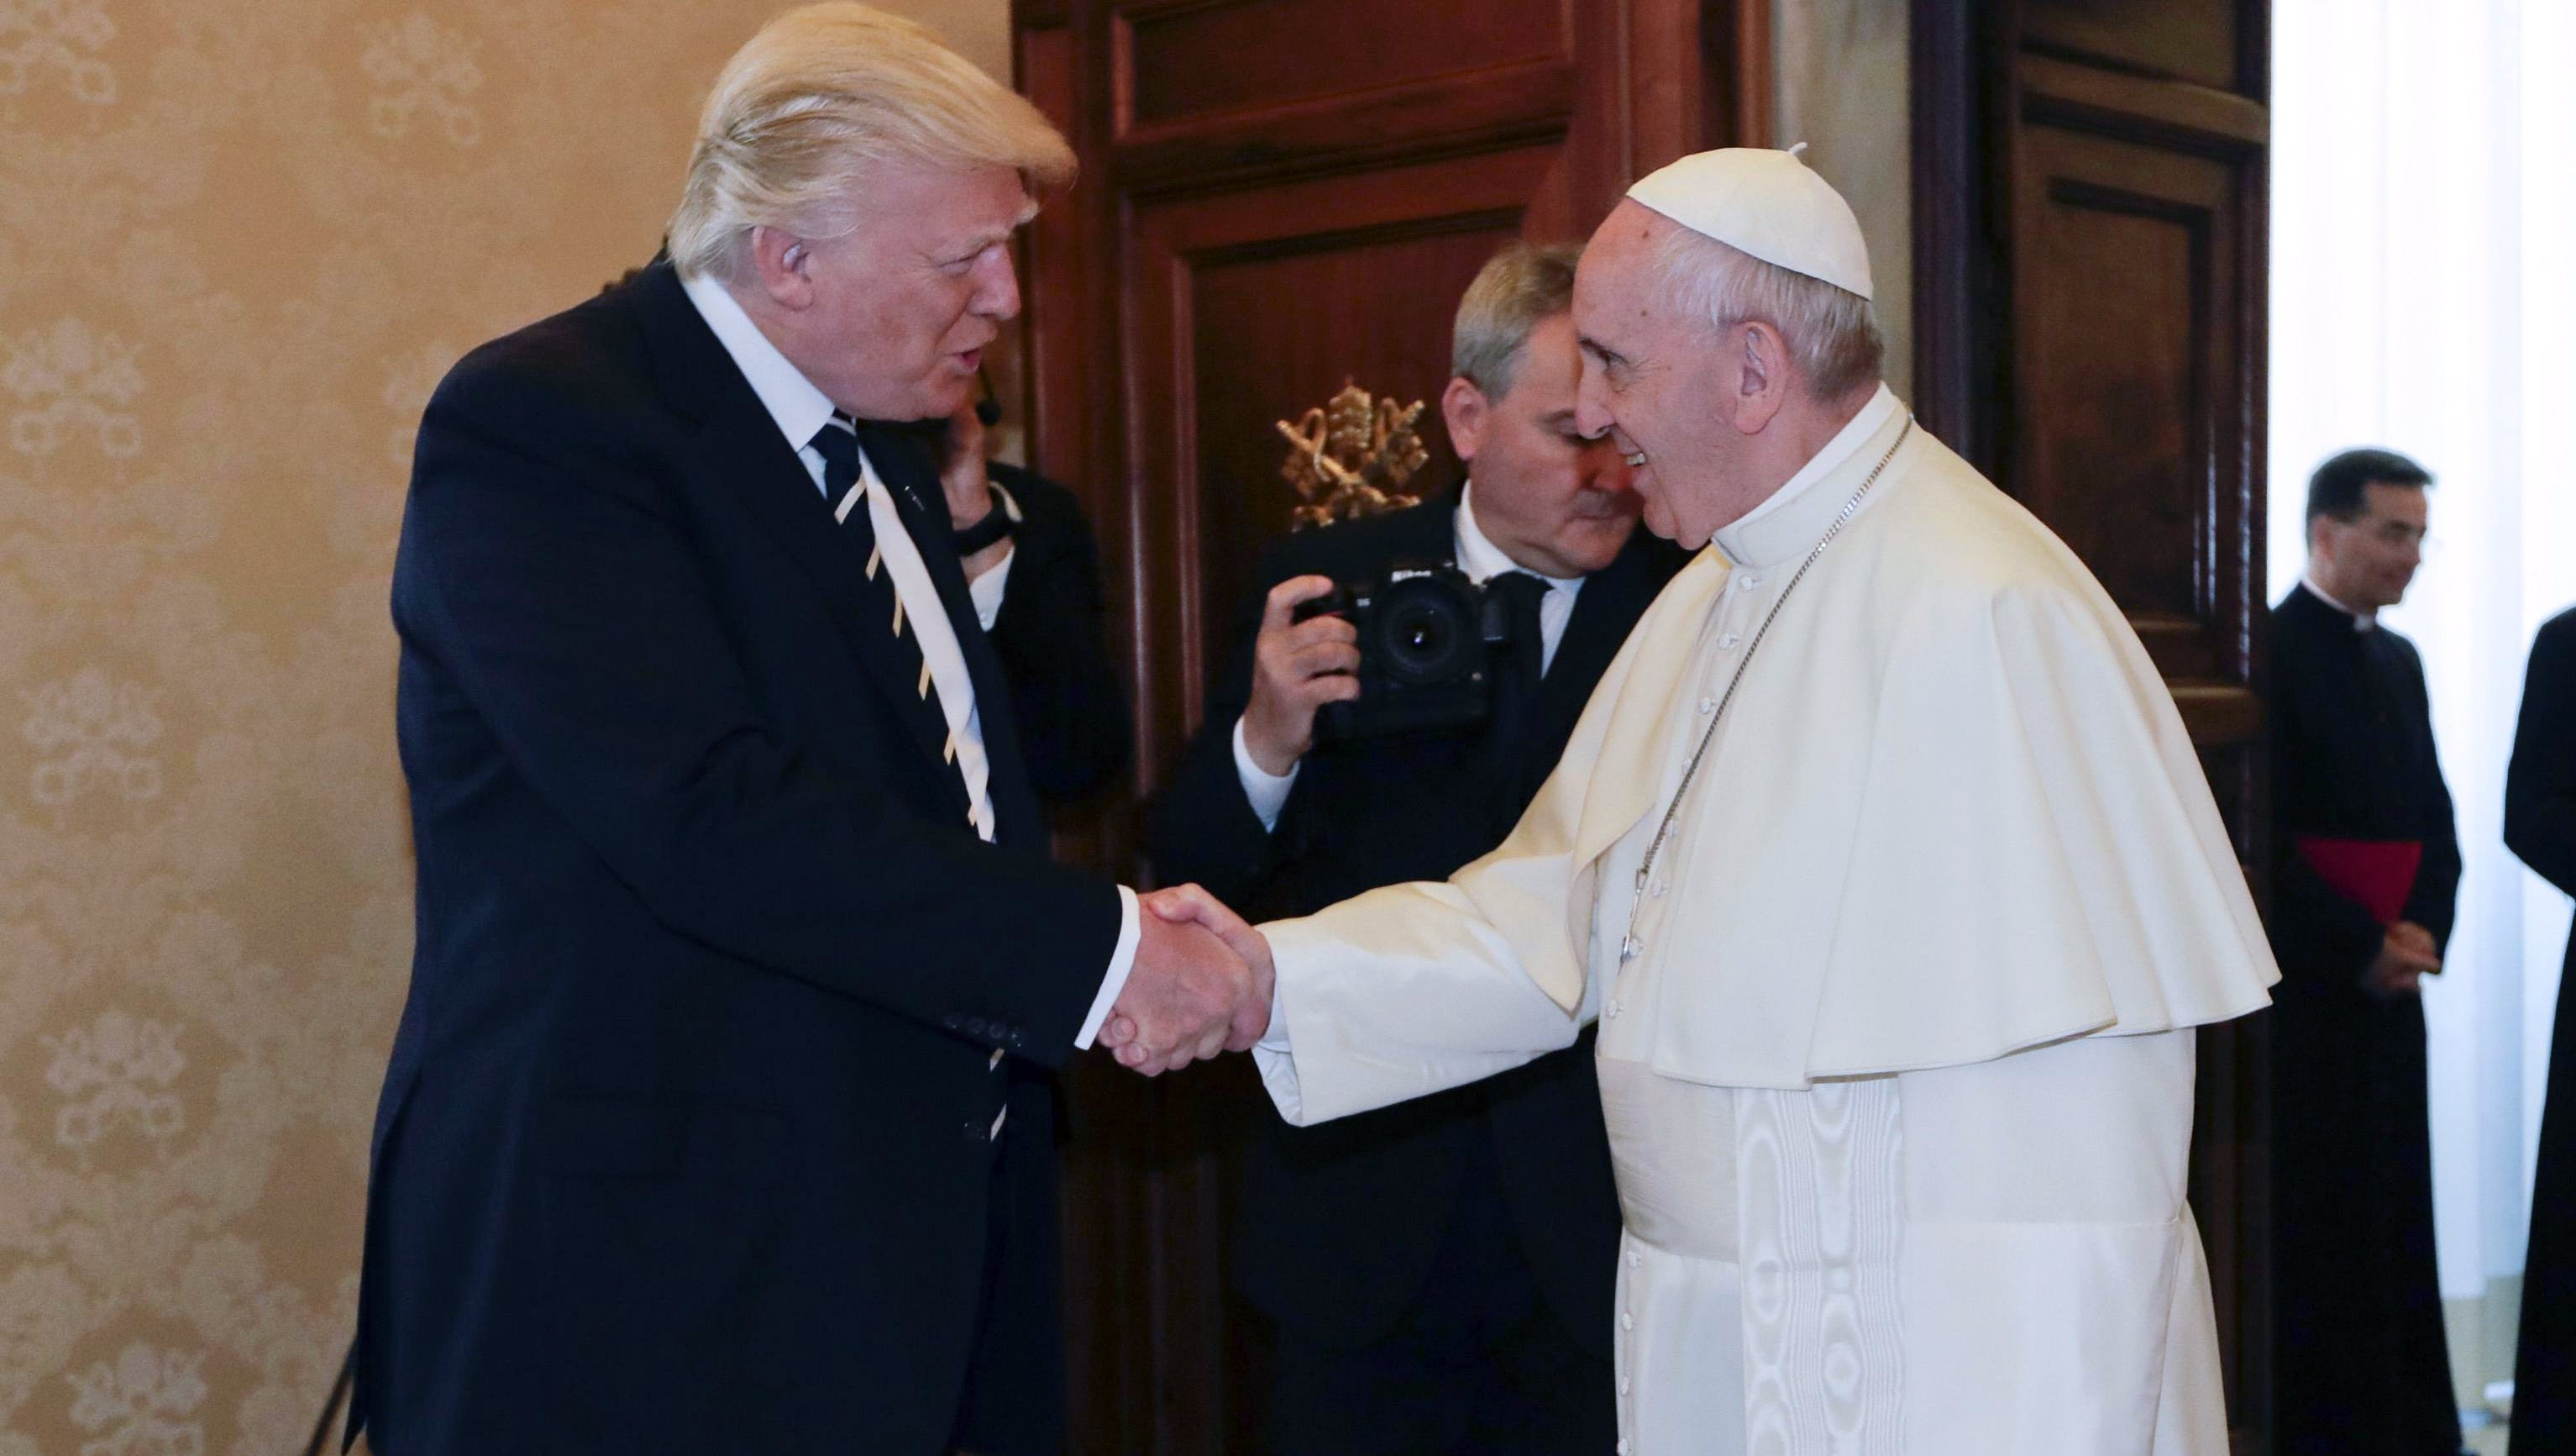 Donald Trump to Pope Francis at the Vatican: 'We can use peace'